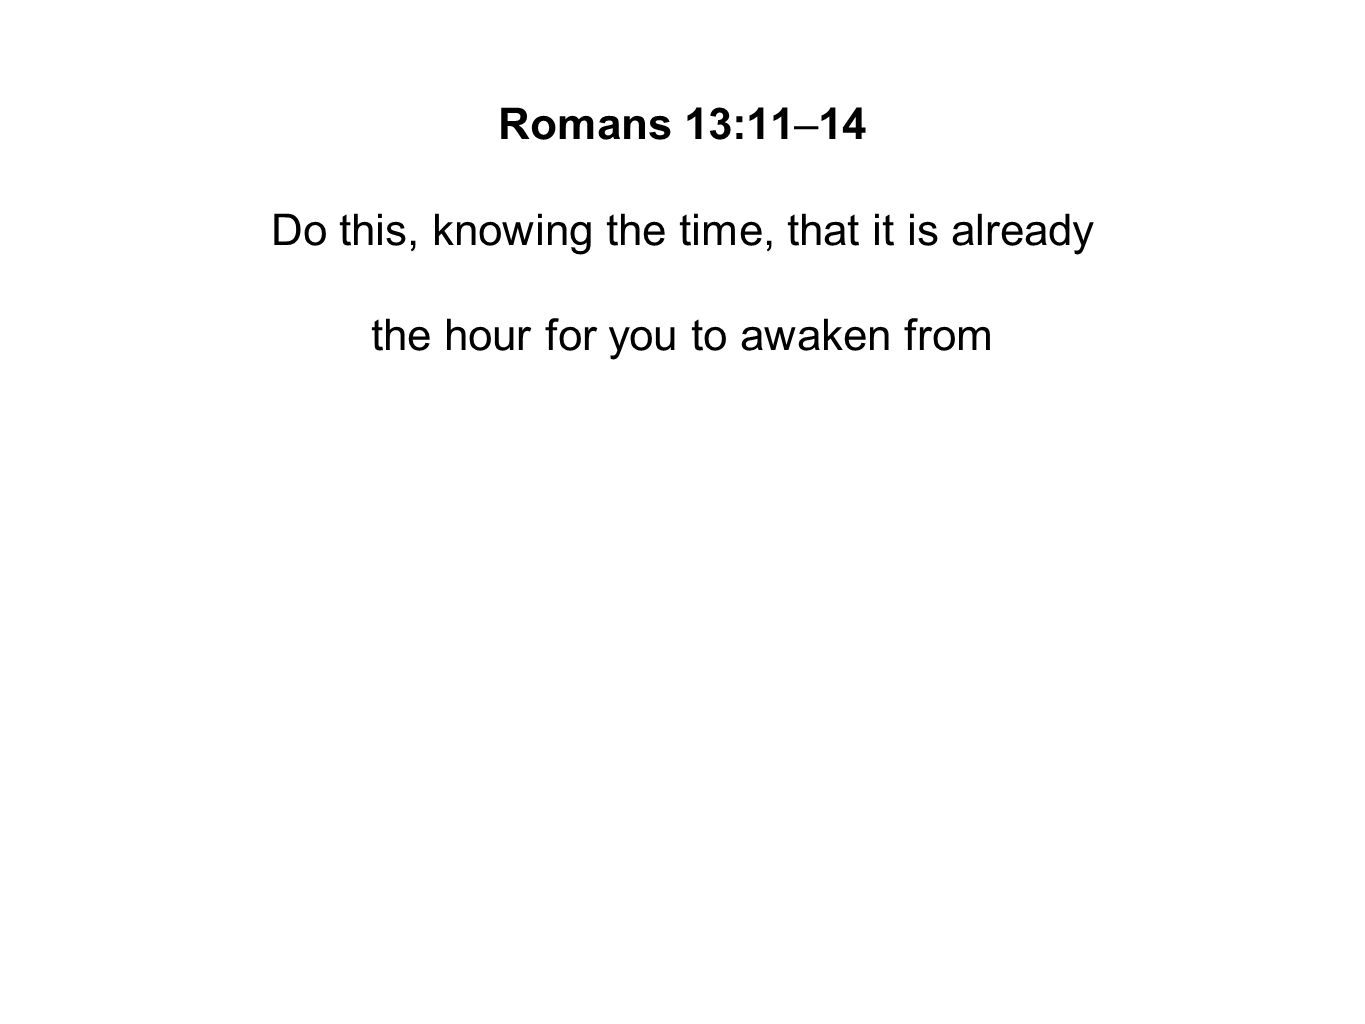 Romans 13:11–14 Do this, knowing the time, that it is already the hour for you to awaken from